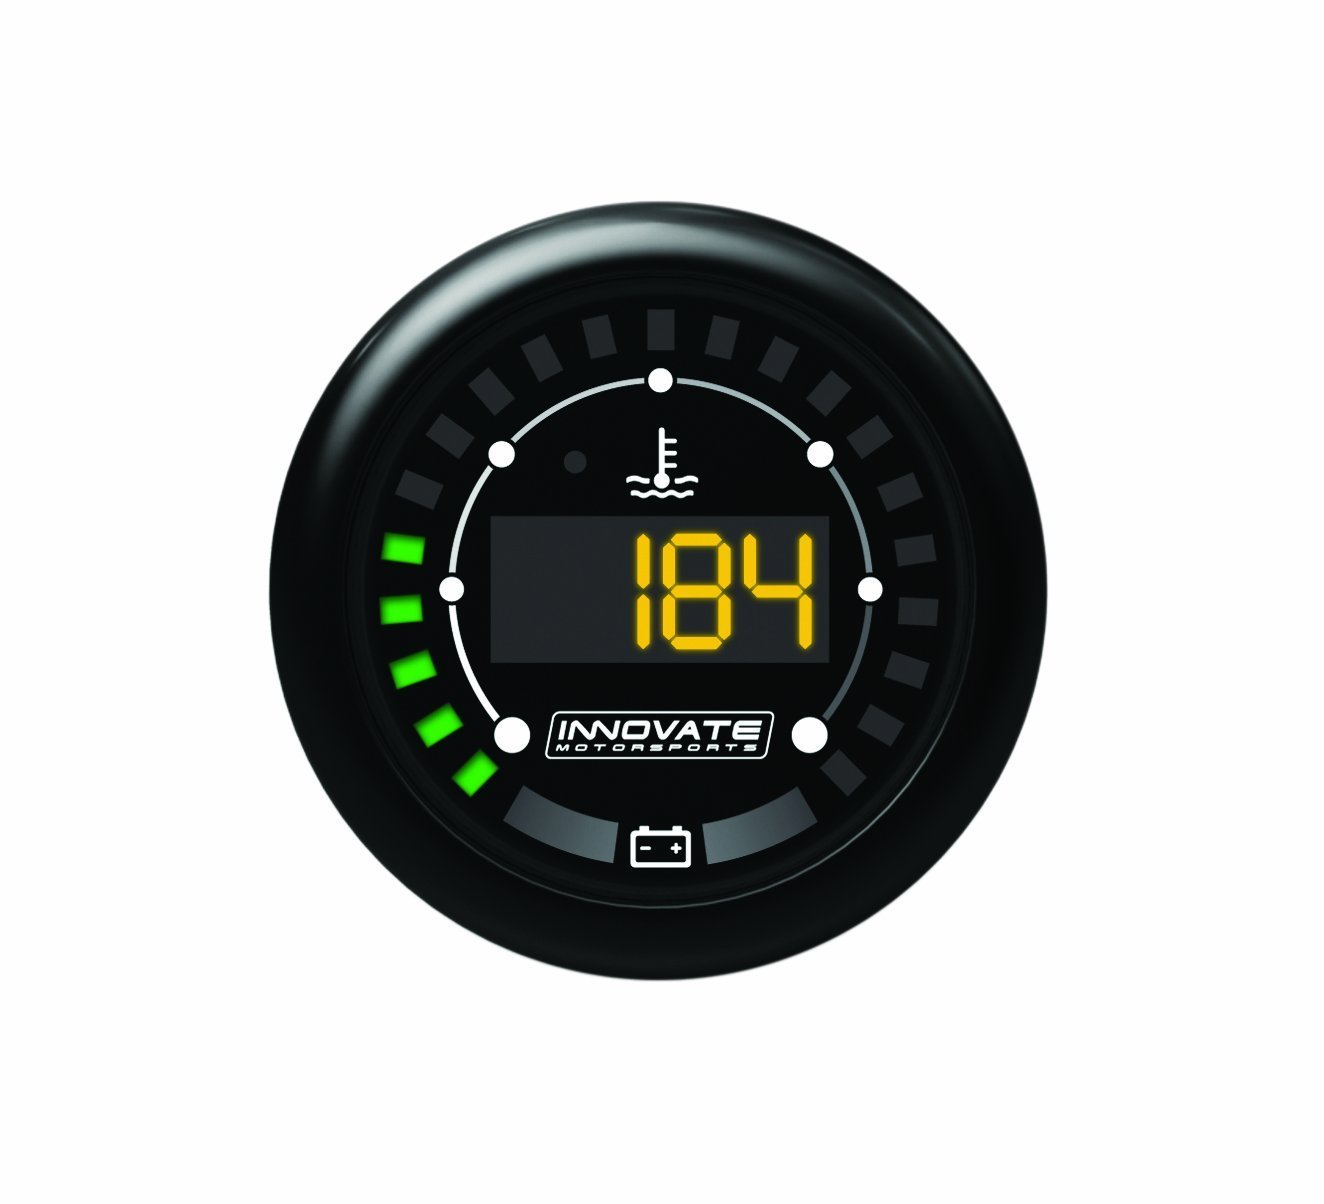 Innovate Motorsports 3853 MTX Digital Series Dual Function Water Temperature and Battery Voltage Gauge Kit